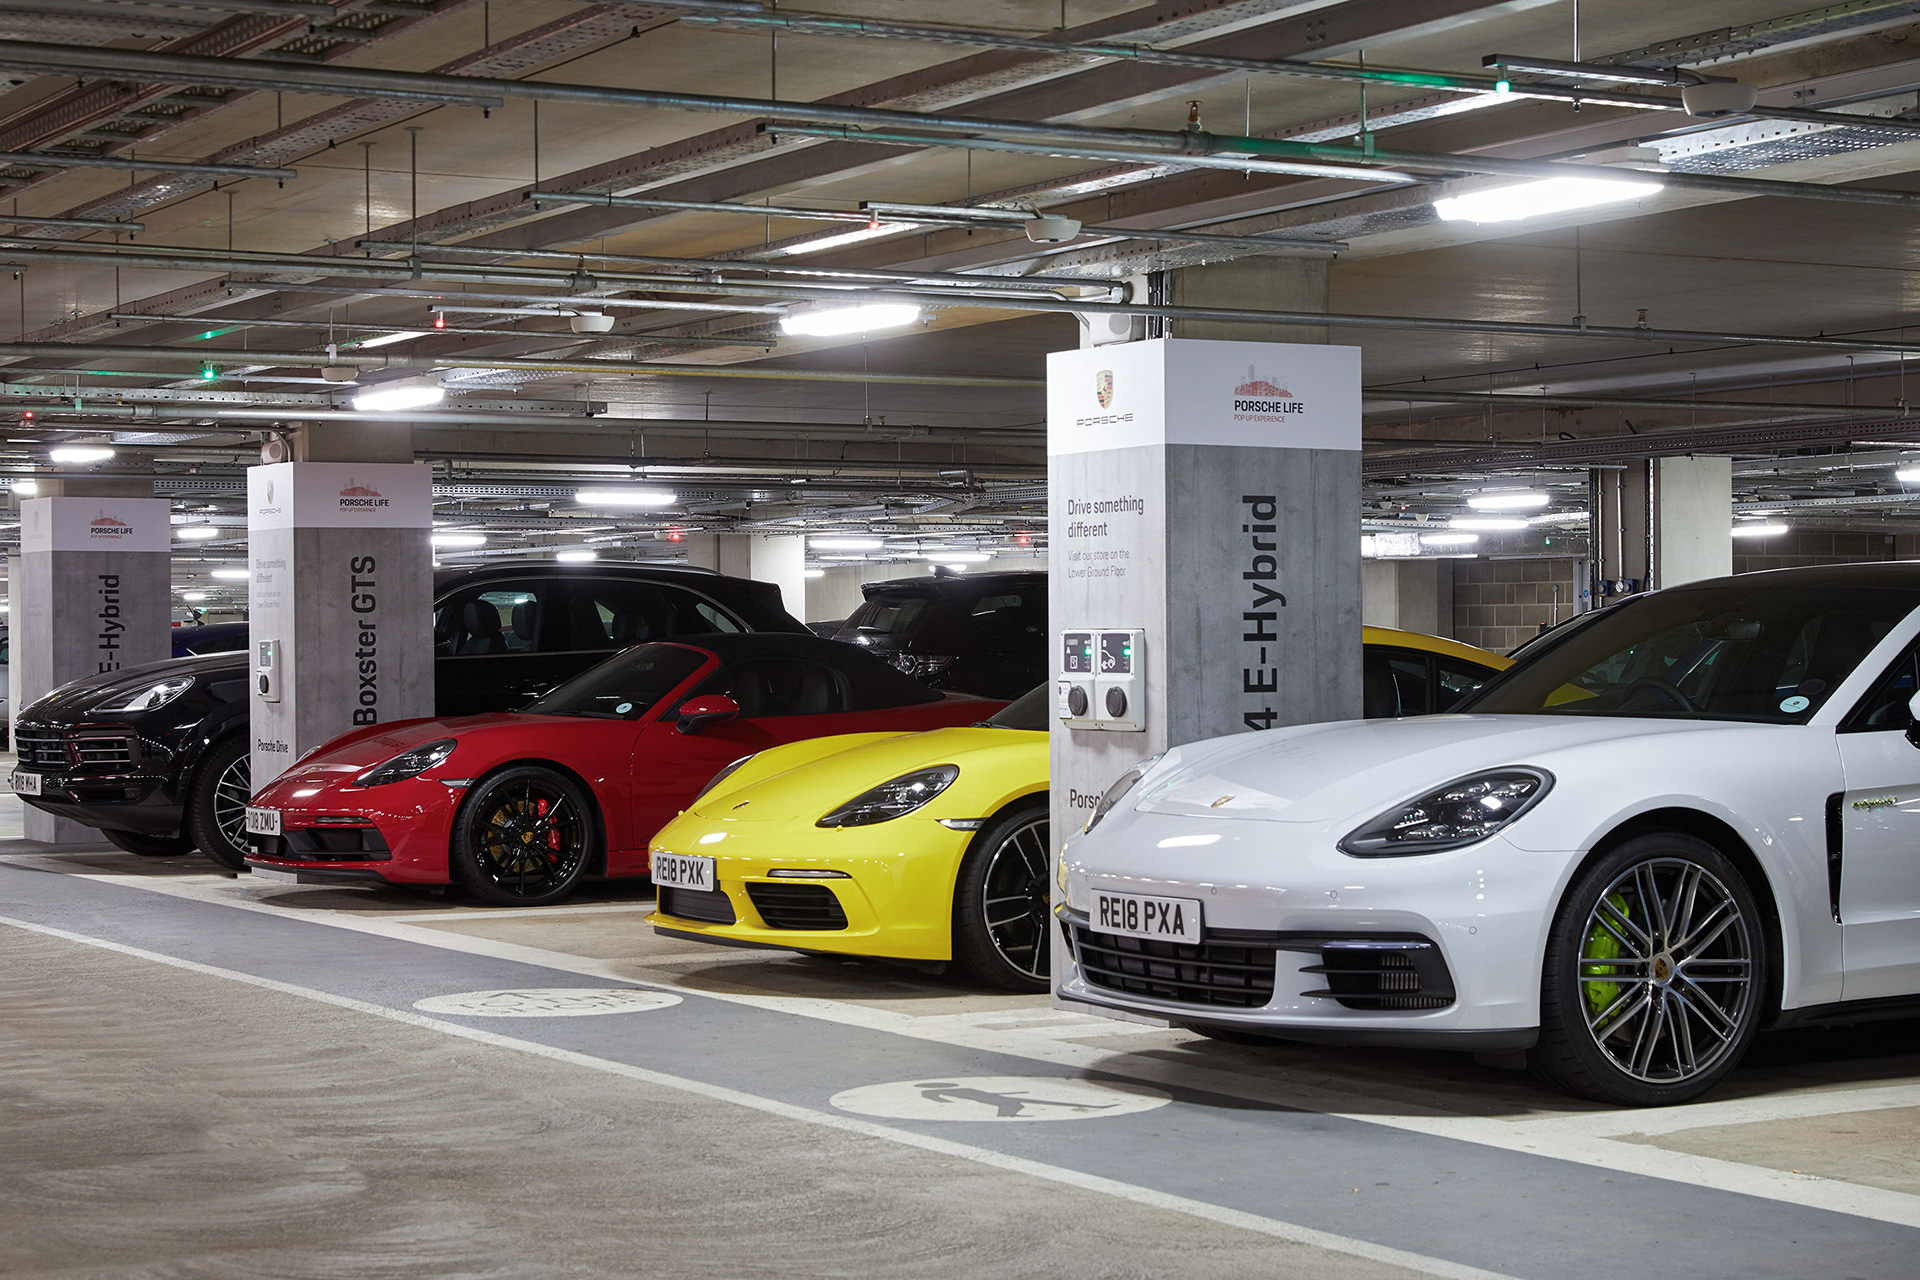 Retail Photography Porsche Store Oxford red, white and yellow Porsche cars lined up in car park for drive away experience